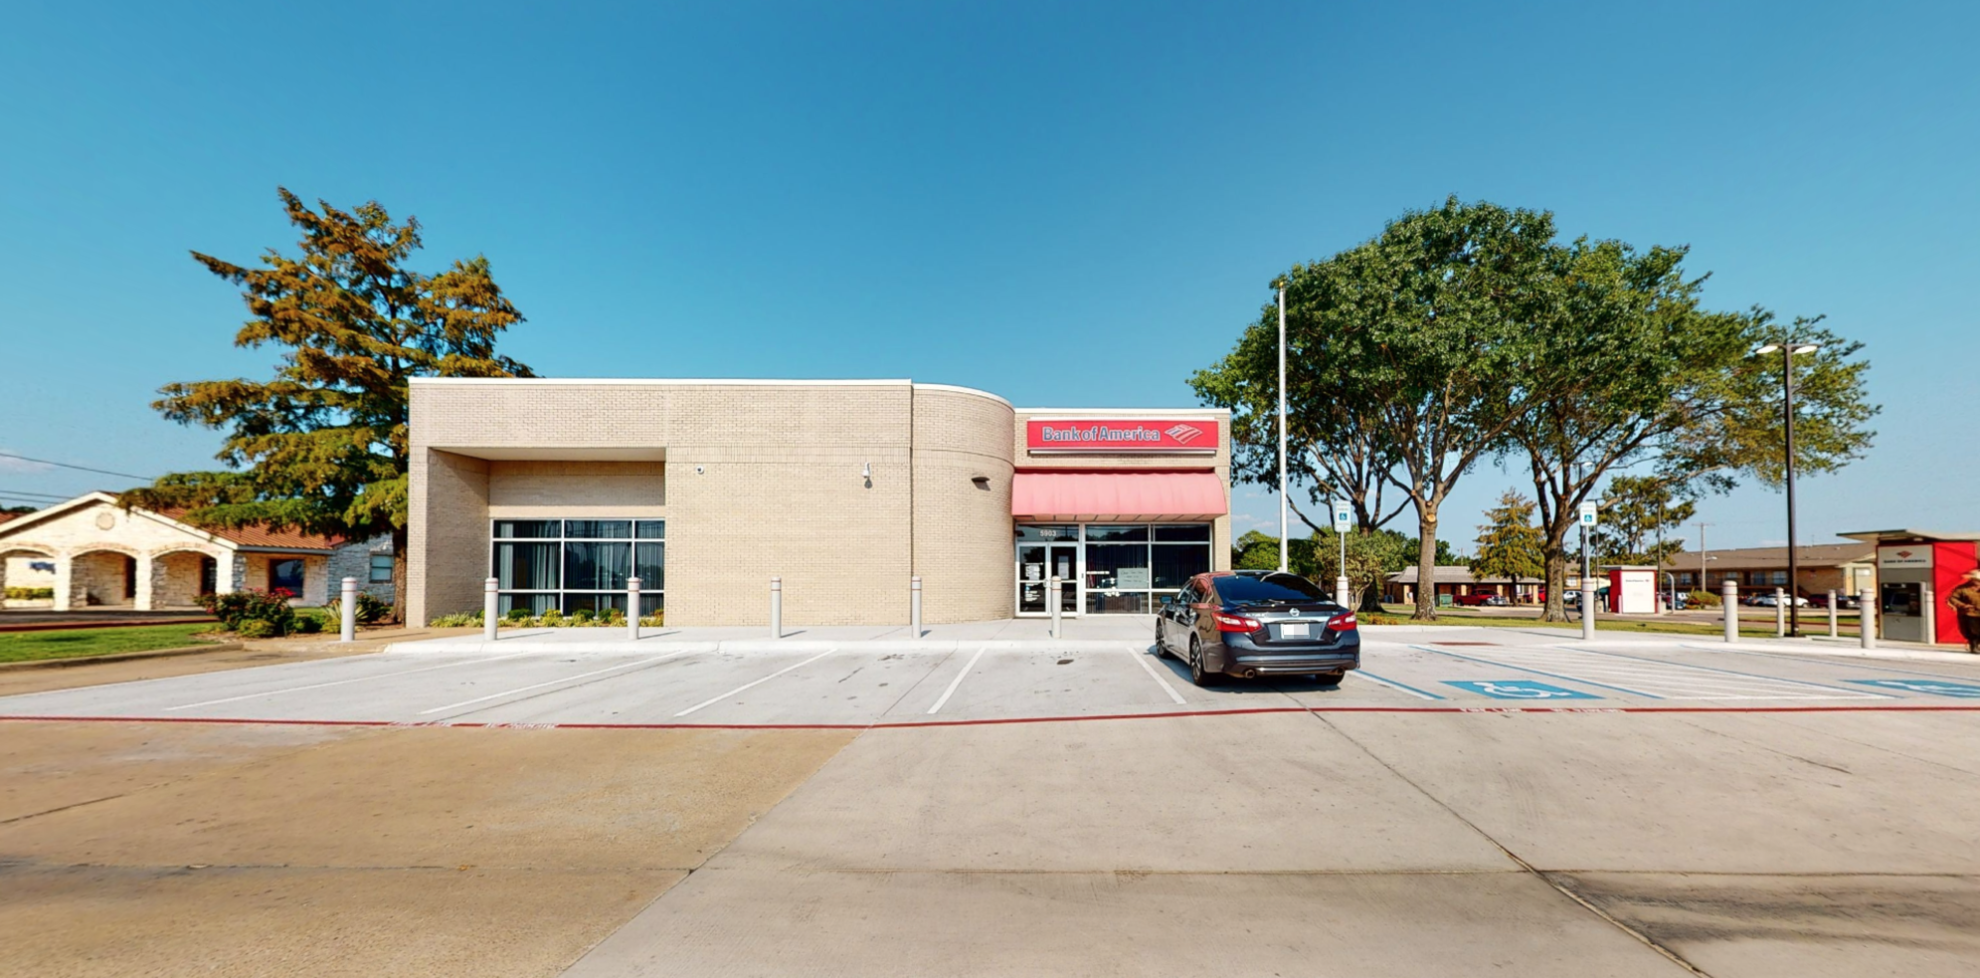 Bank of America financial center with drive-thru ATM and teller | 5903 Wesley St, Greenville, TX 75402